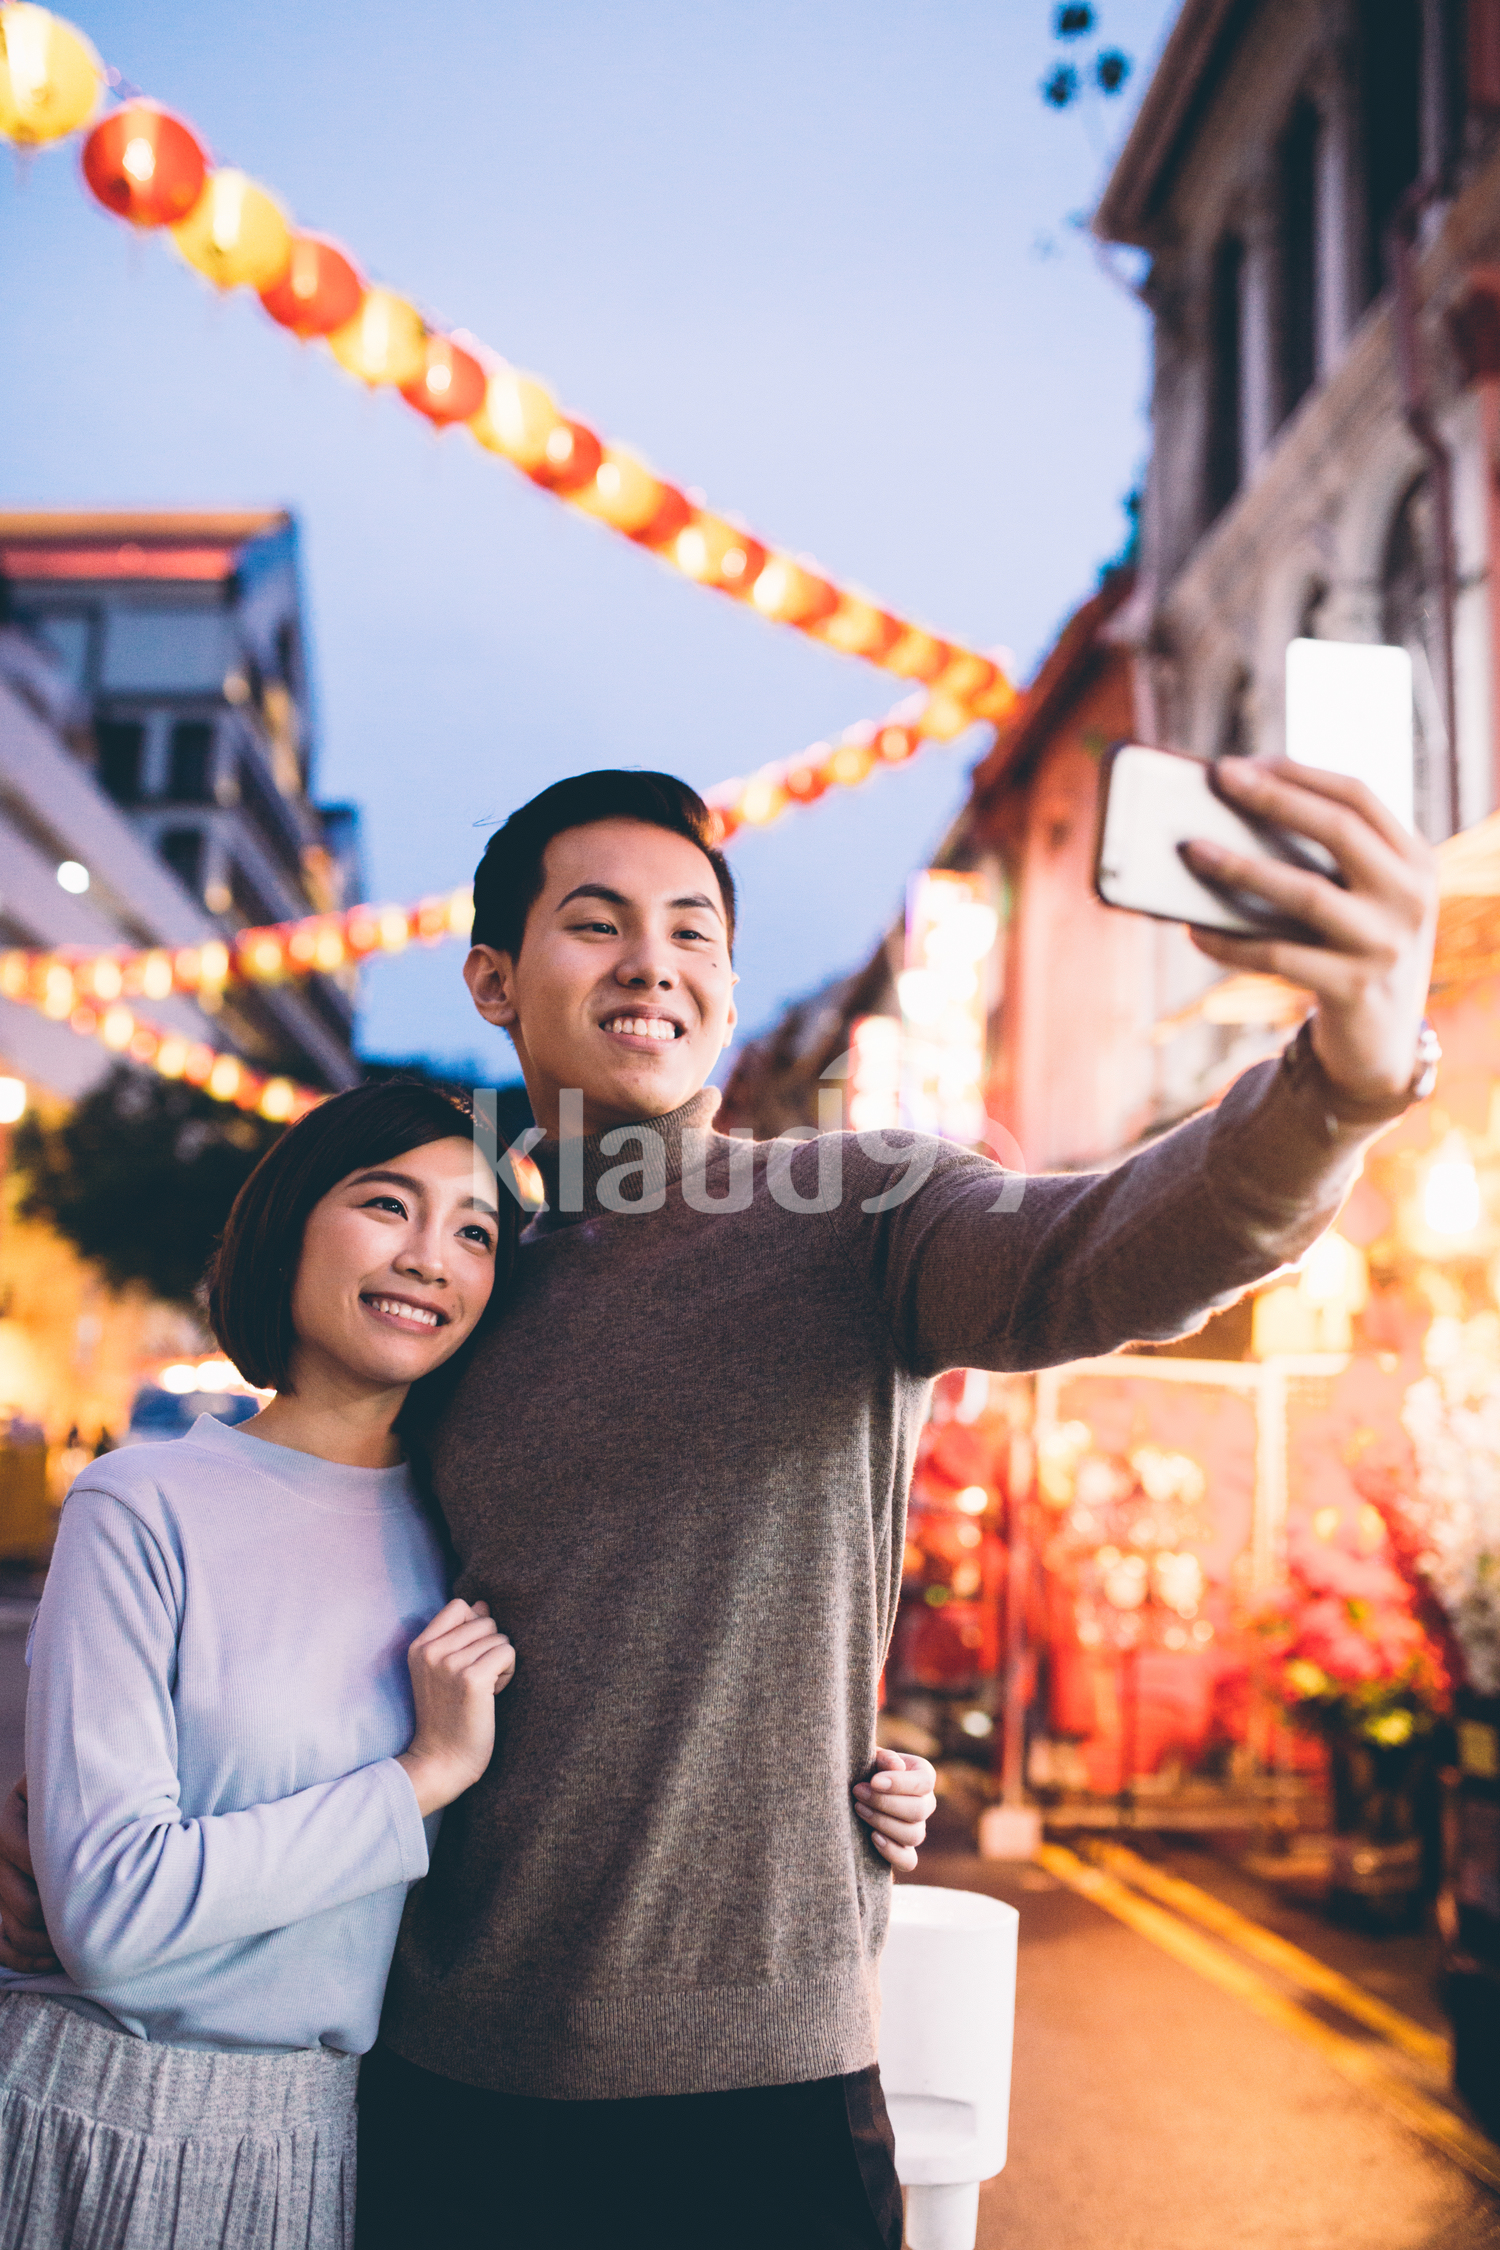 Bautiful young couple doing a selfie in Chinatown, Singapore during dusk